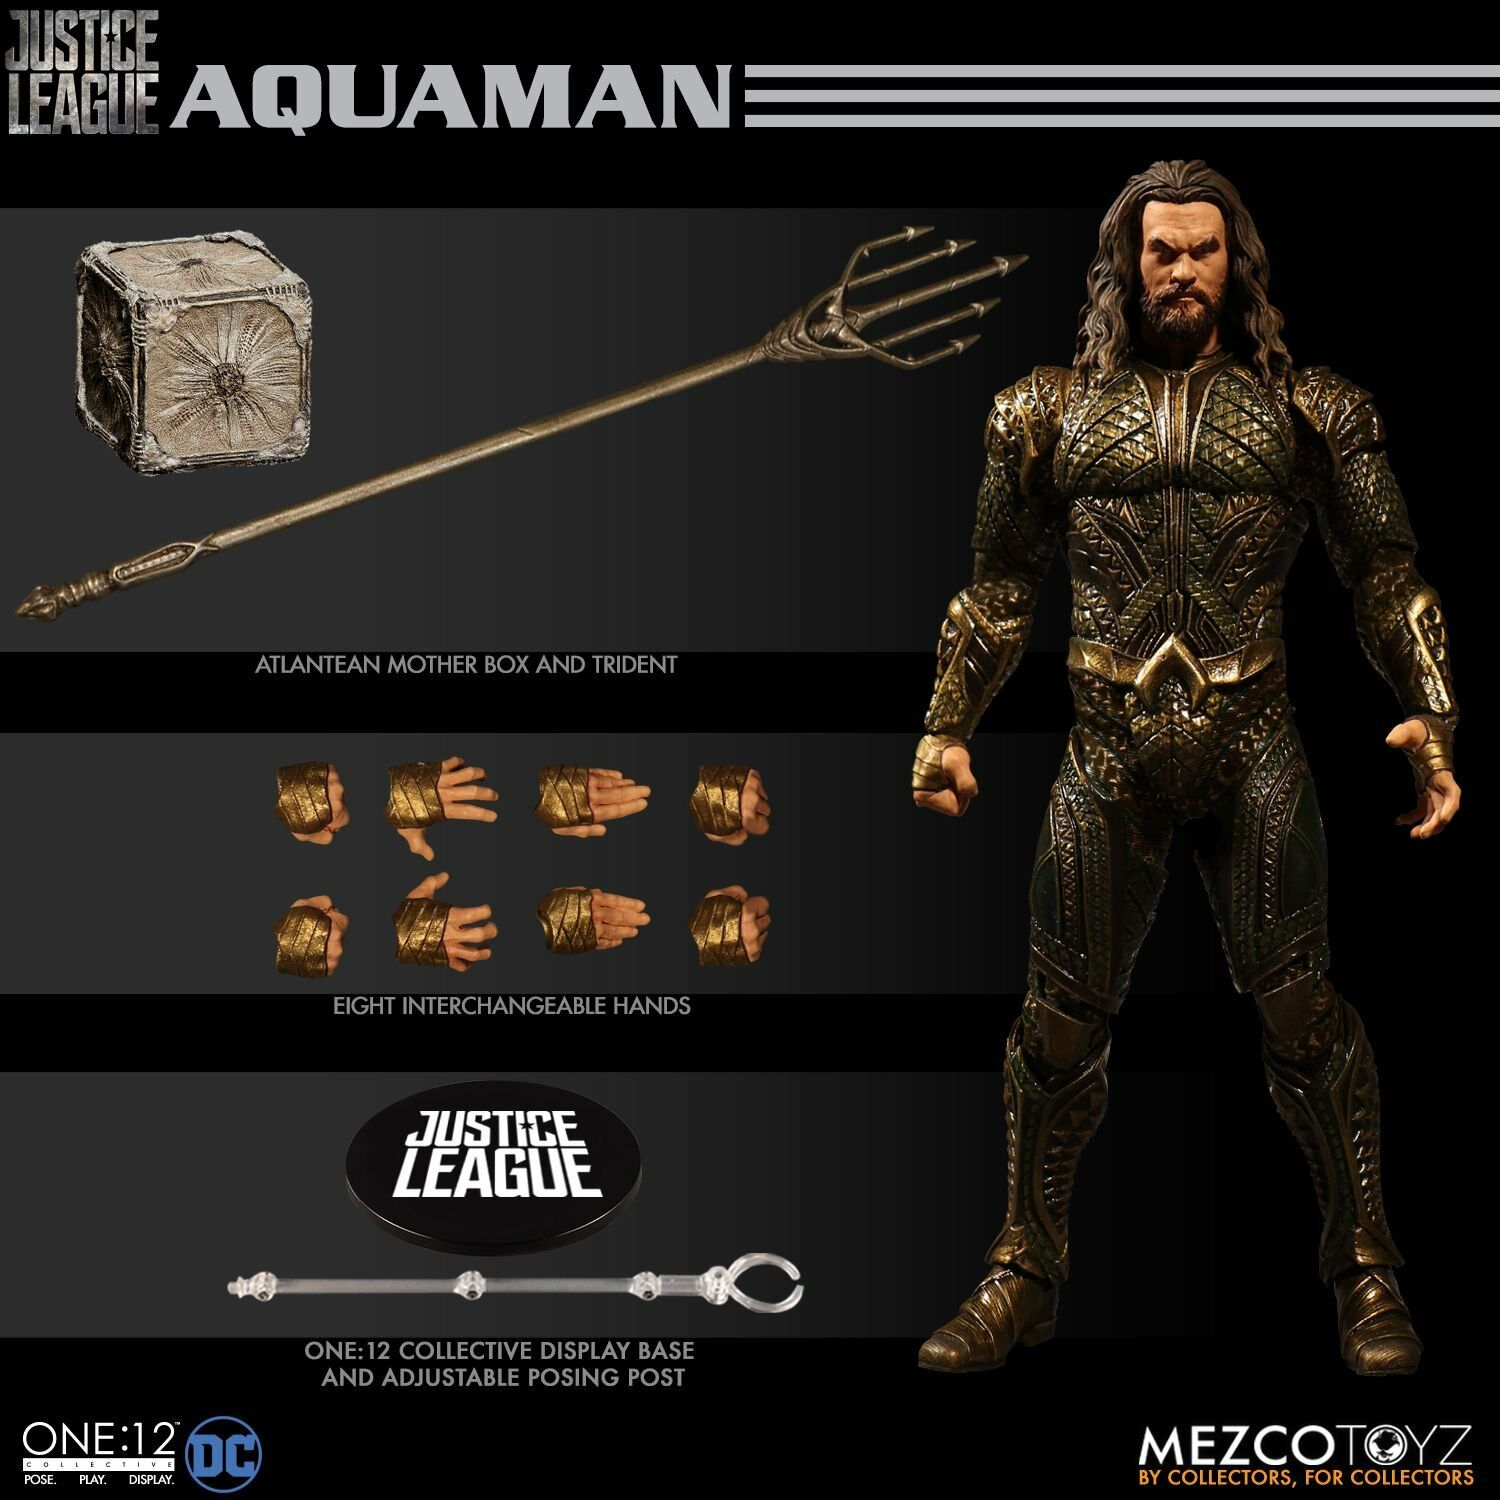 One 12 Collective DC Comics Aquaman 1 12th Scale Figure Mezco PRE-ORDER